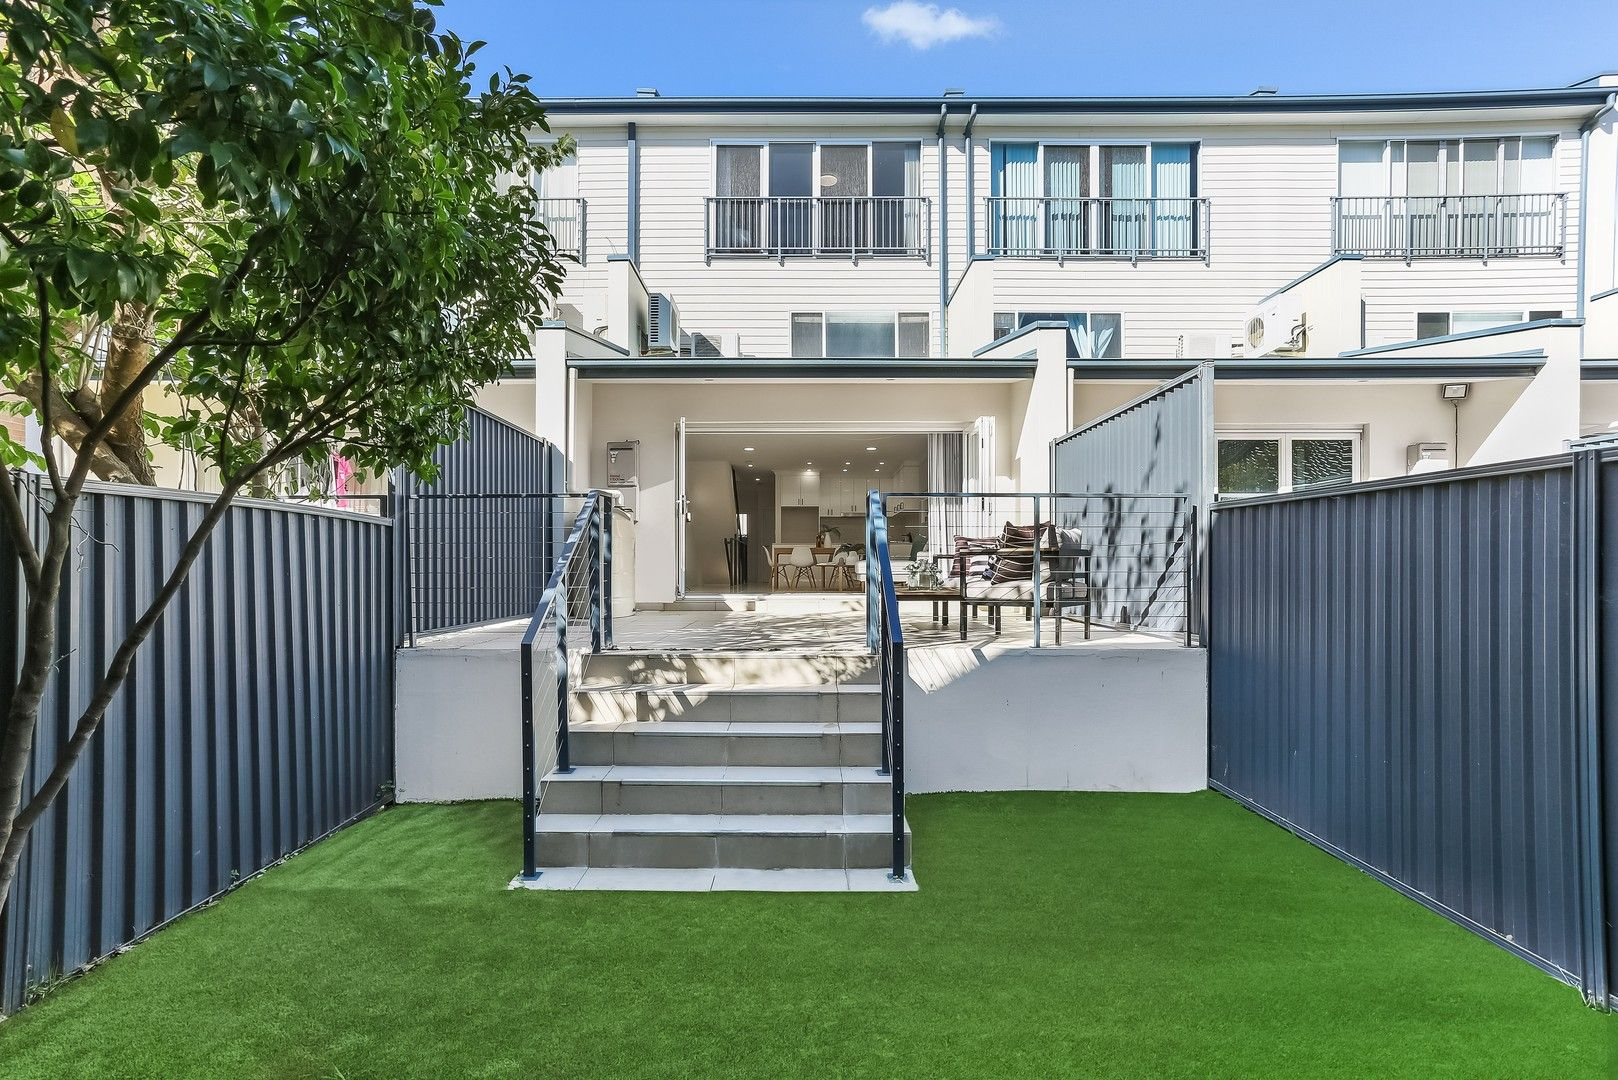 7/37-39 Asquith Street, Silverwater NSW 2128, Image 0